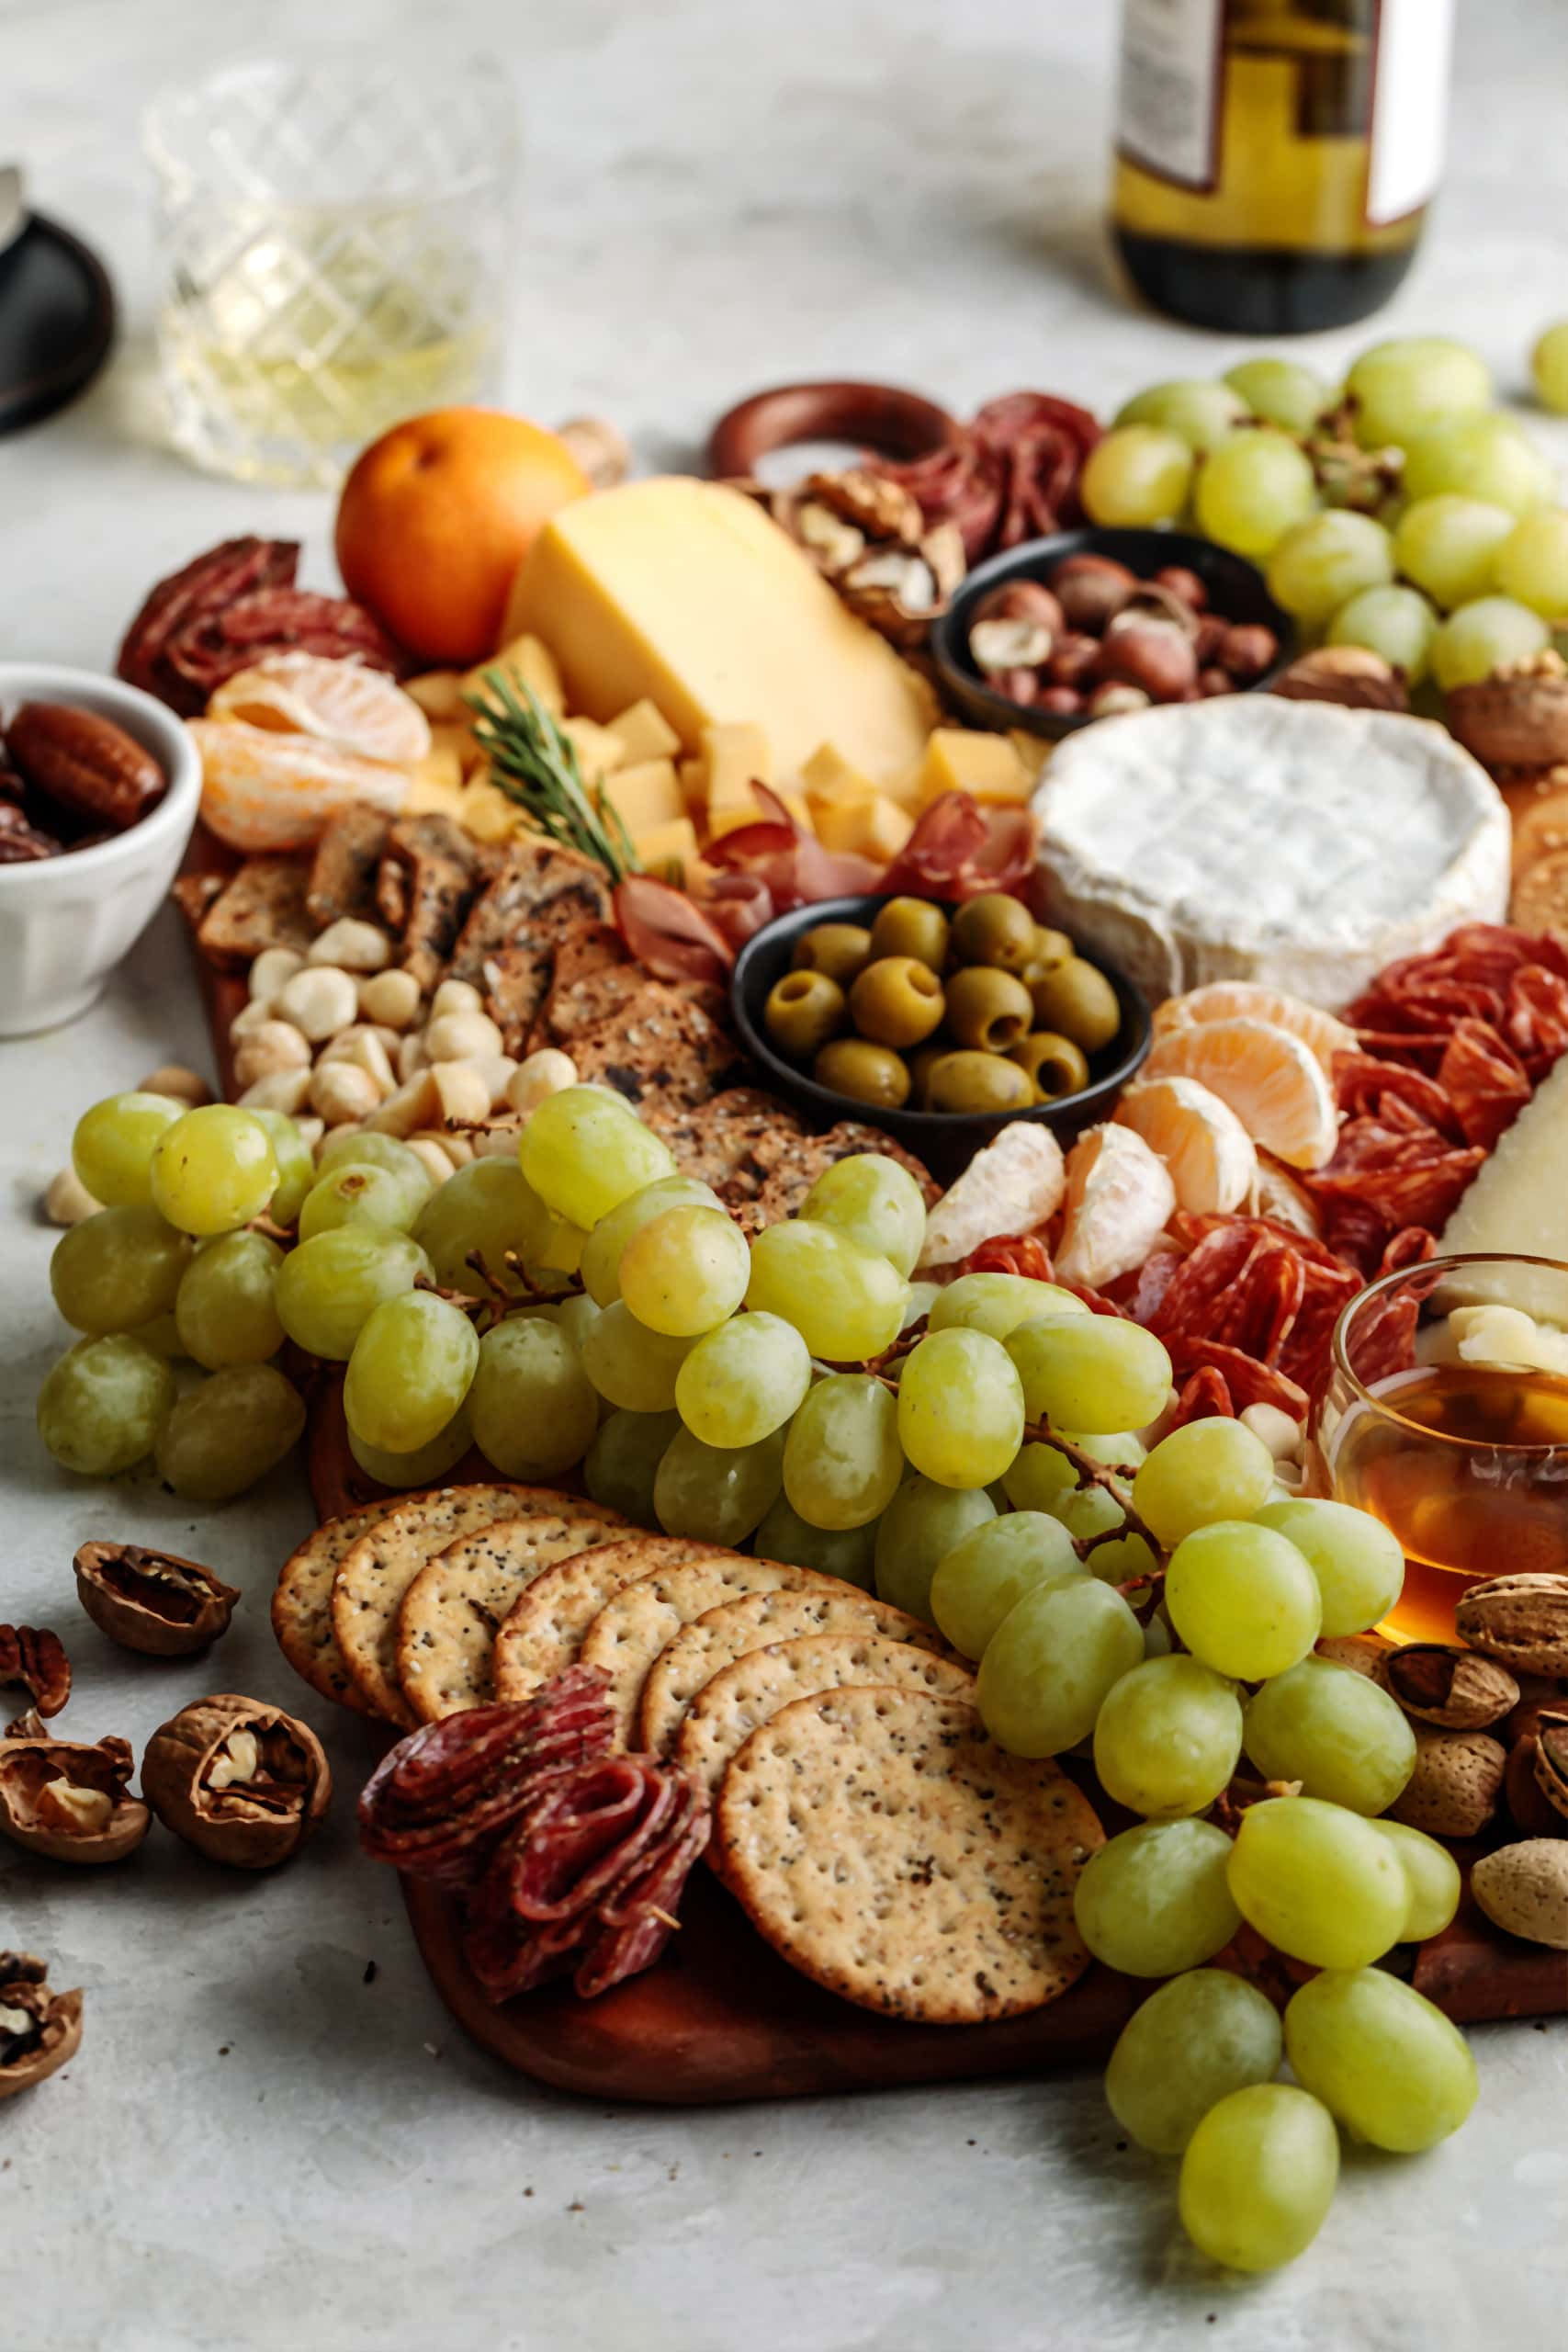 How to build an easy and impressive Winter Cheese Board featuring seasonal fruits, nuts, olives and a variety of cheese and charcuterie.